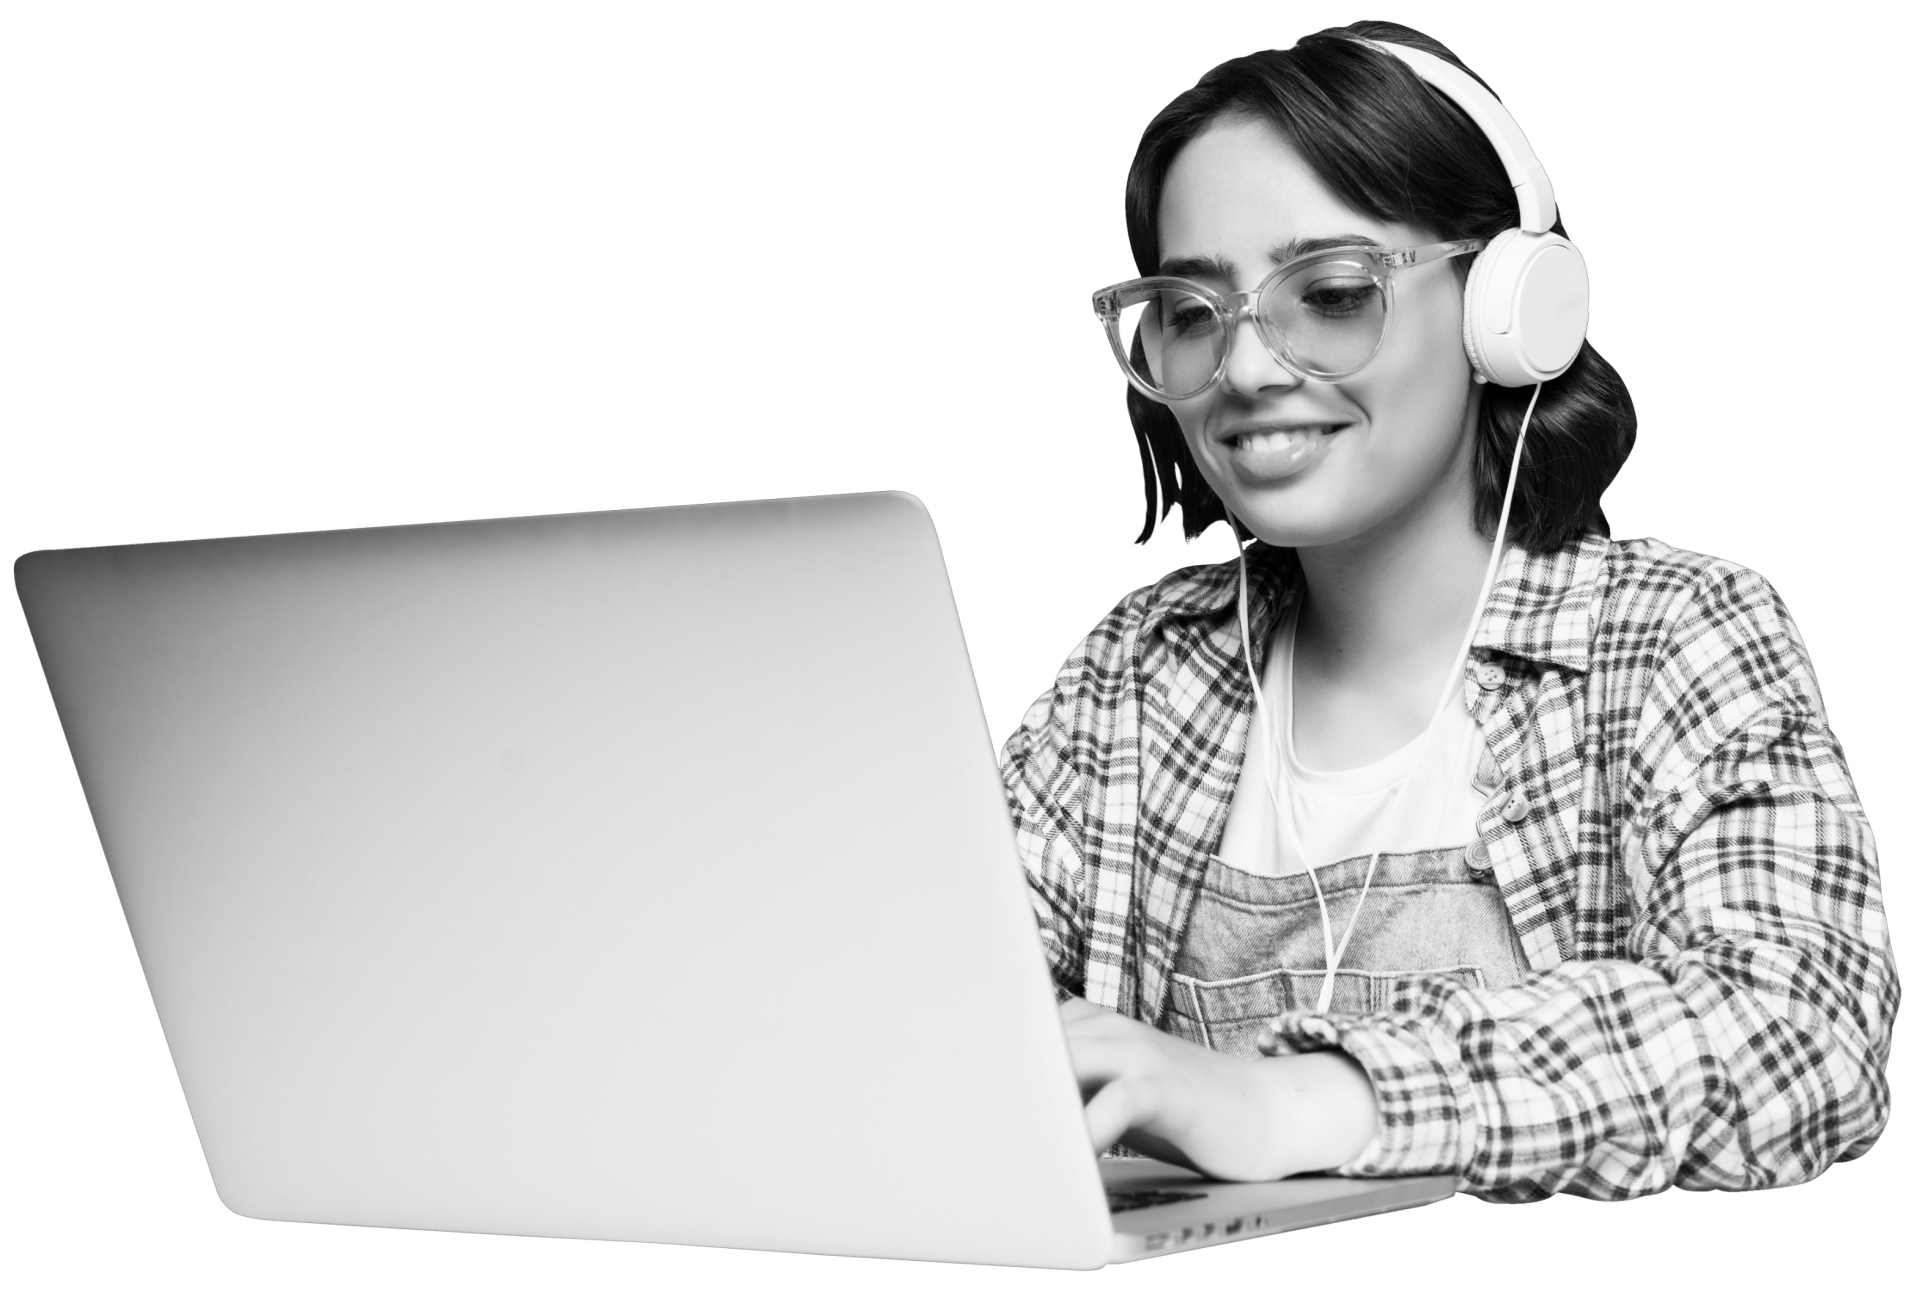 Someone using a computer with headphones